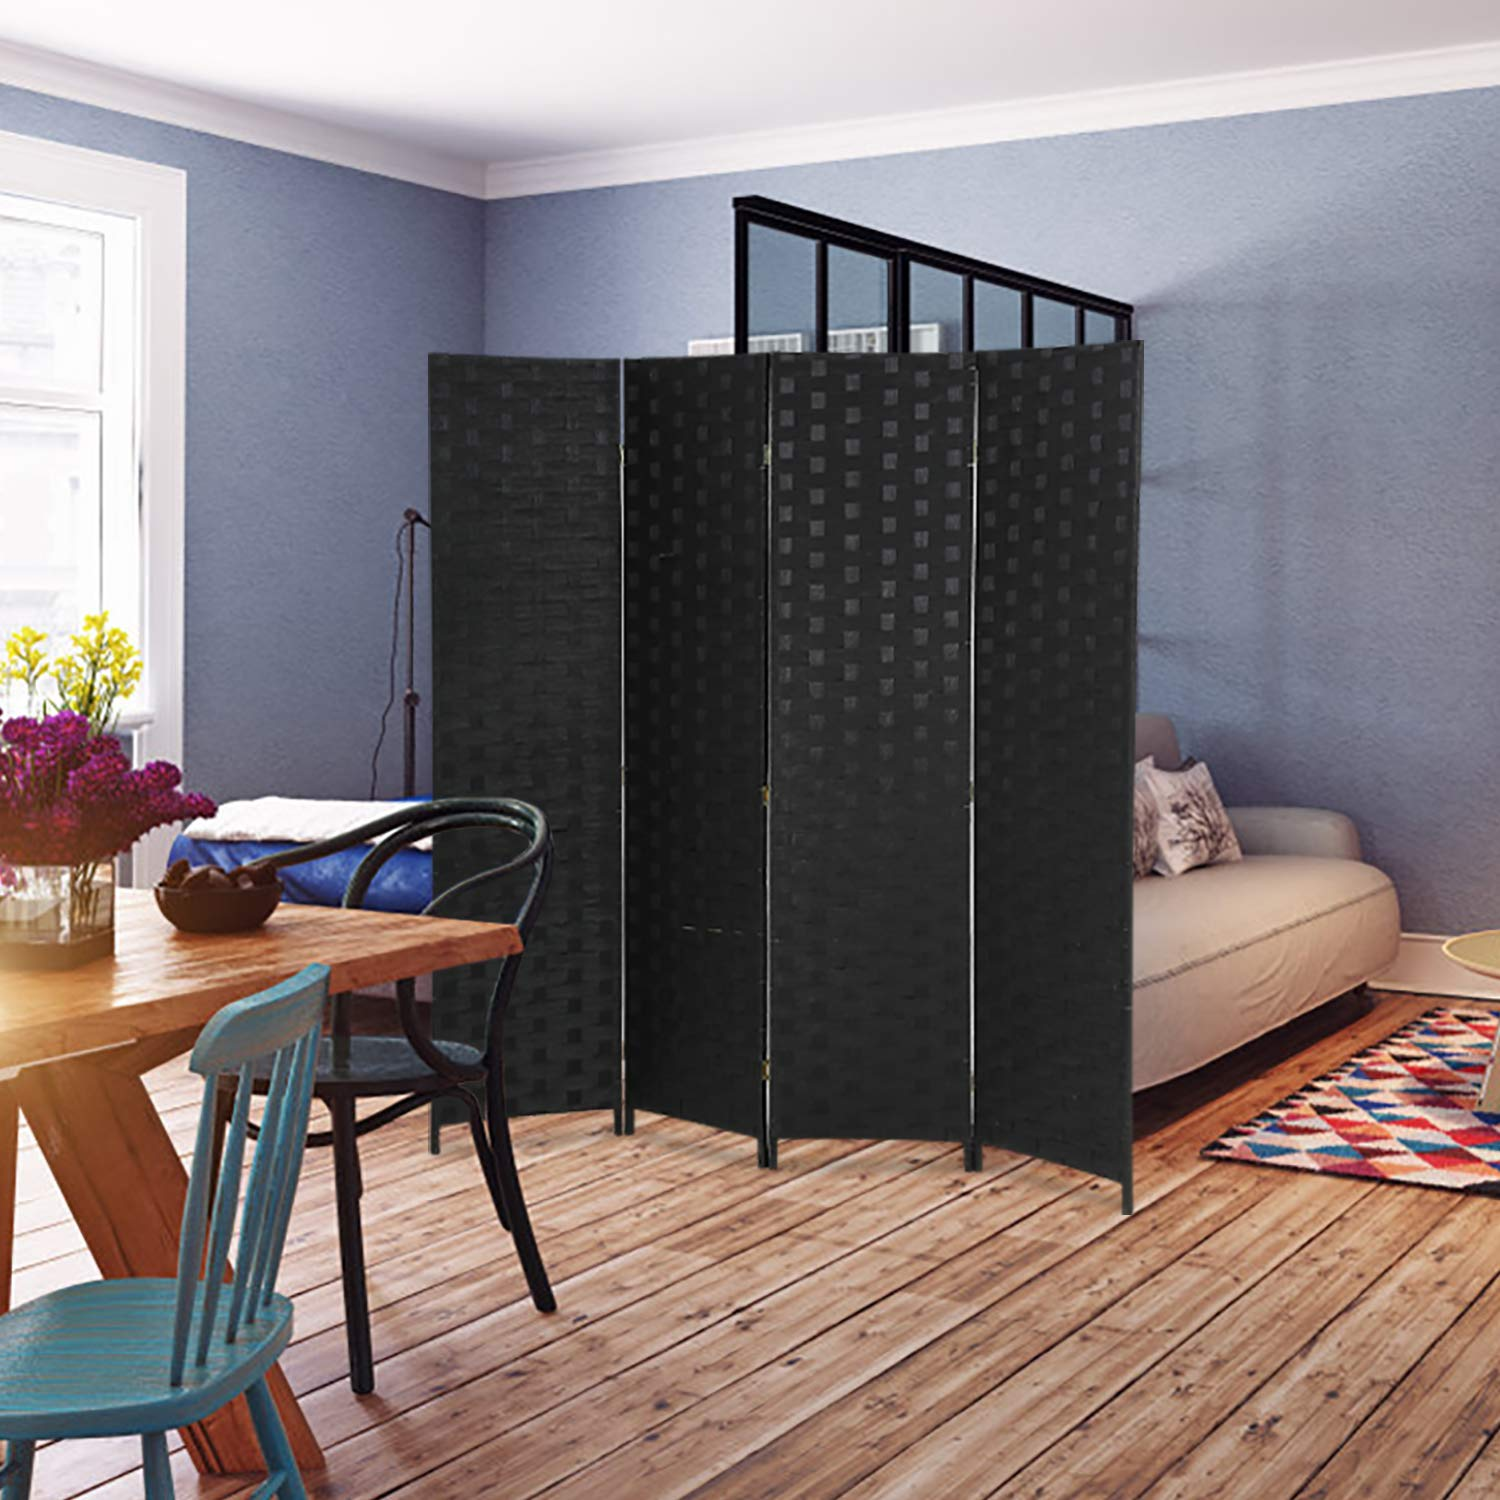 Superb Mr Direct Room Divider 4 Panel Wood Mesh Woven Design Room Screen Divider Wooden Screen Folding Portable Partition Screen Screen Wood For Home Office Beutiful Home Inspiration Xortanetmahrainfo